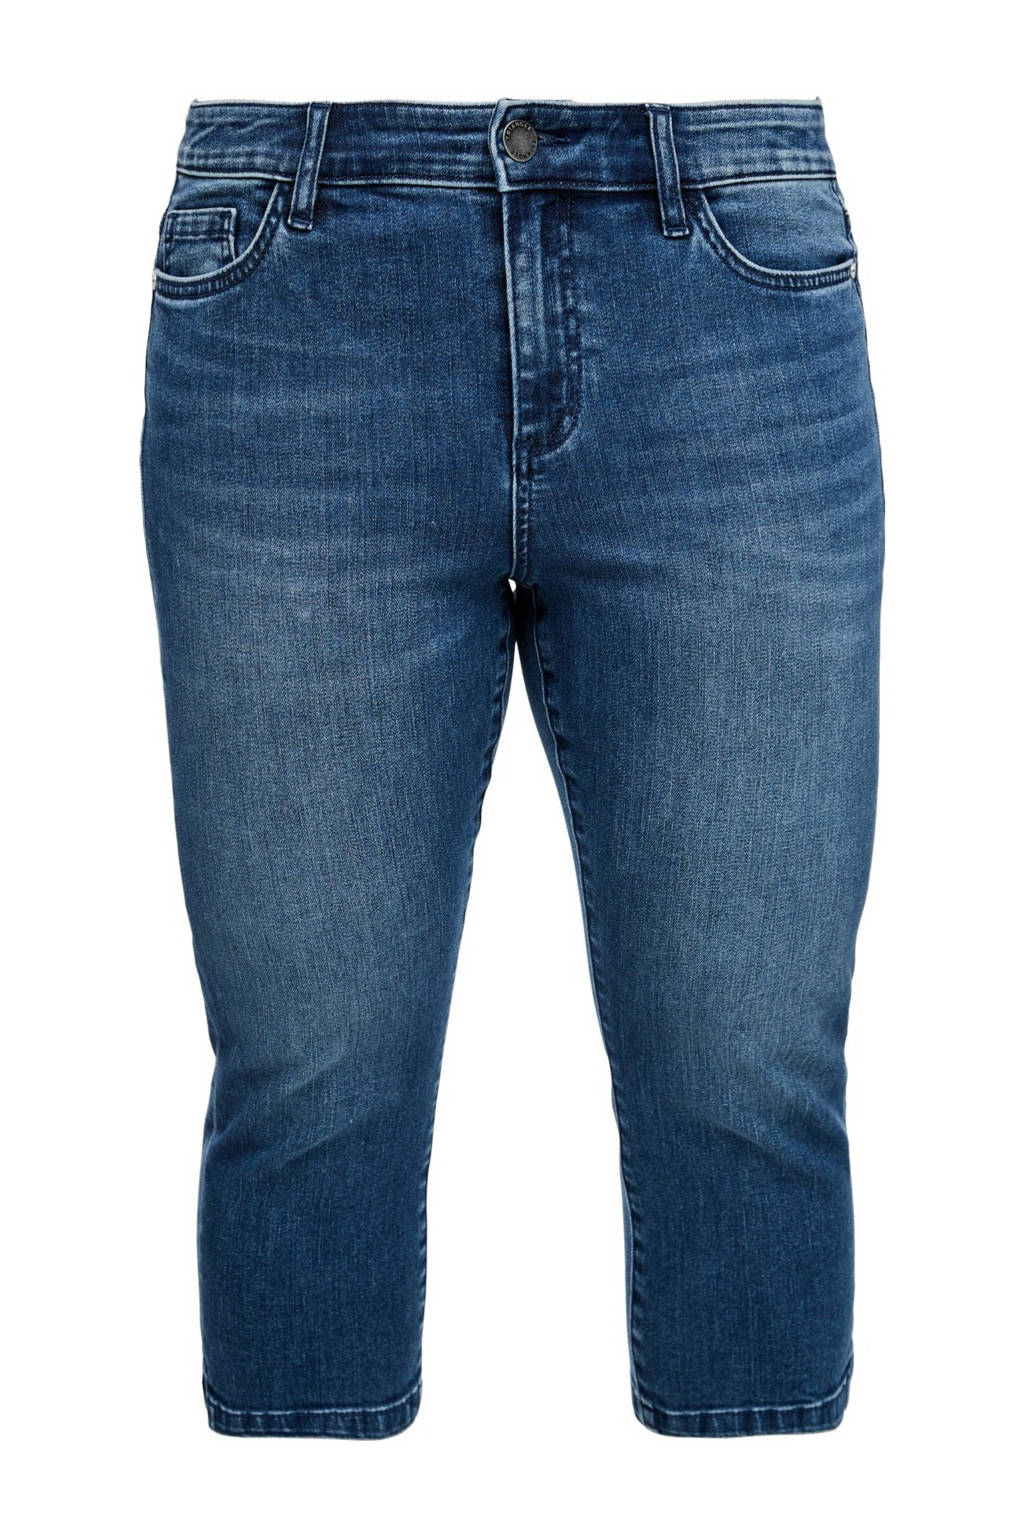 TRIANGLE slim fit capri jeans blauw, Blauw